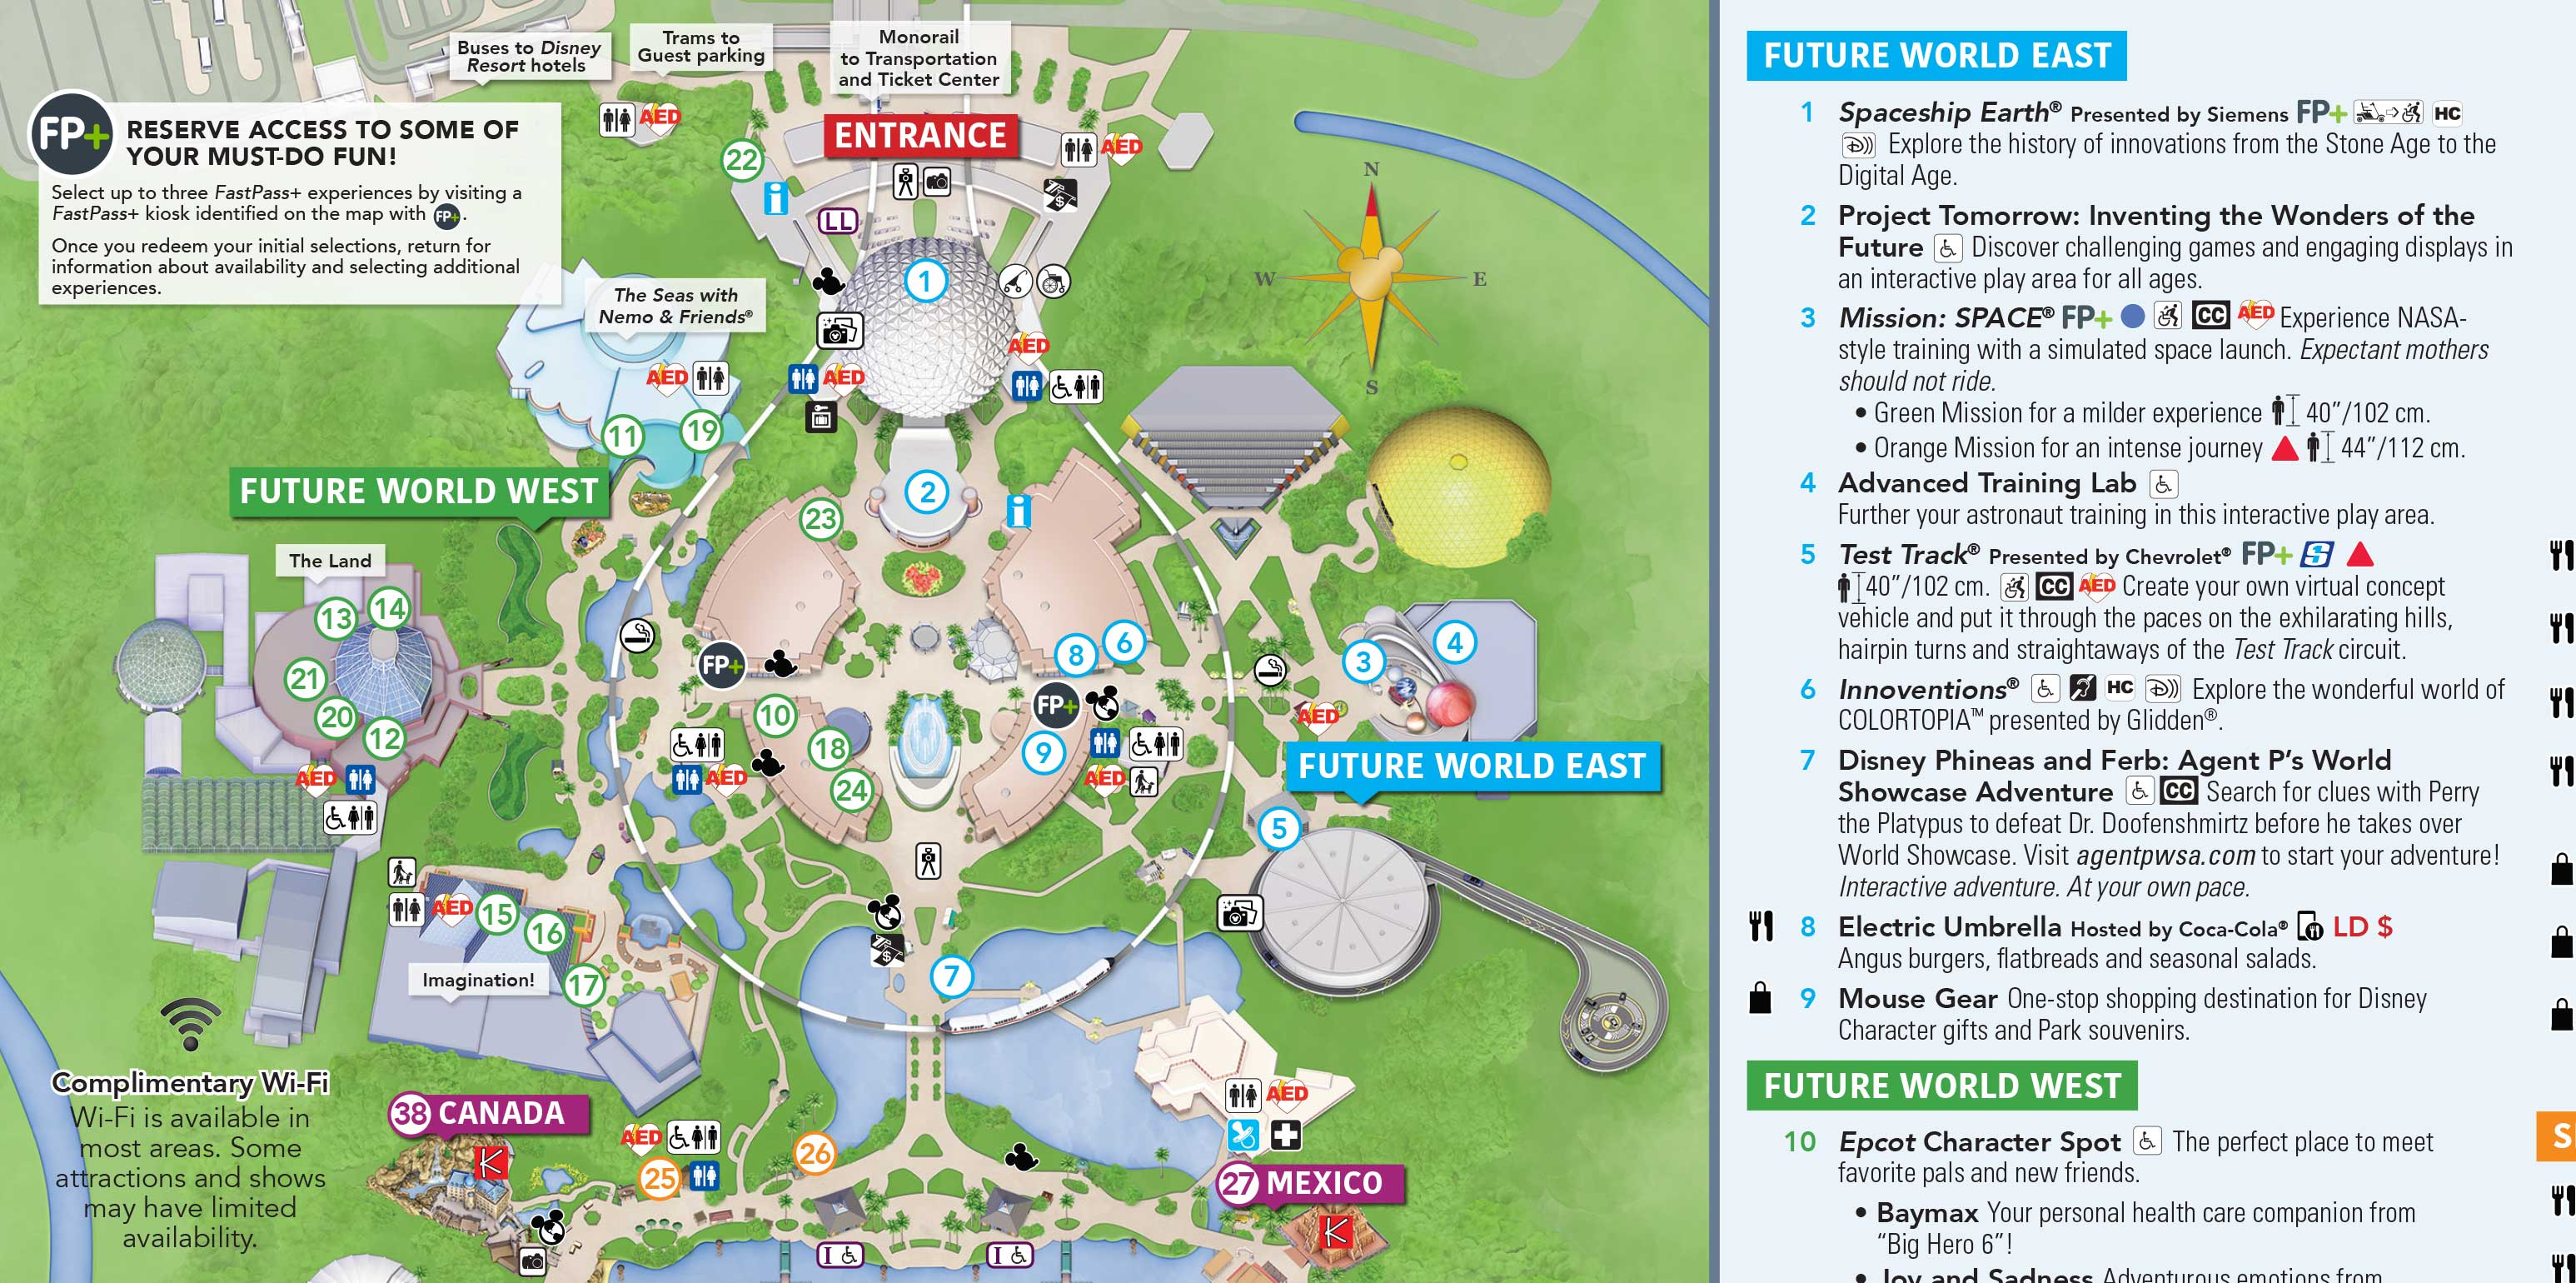 February 2018 Epcot Guide Map